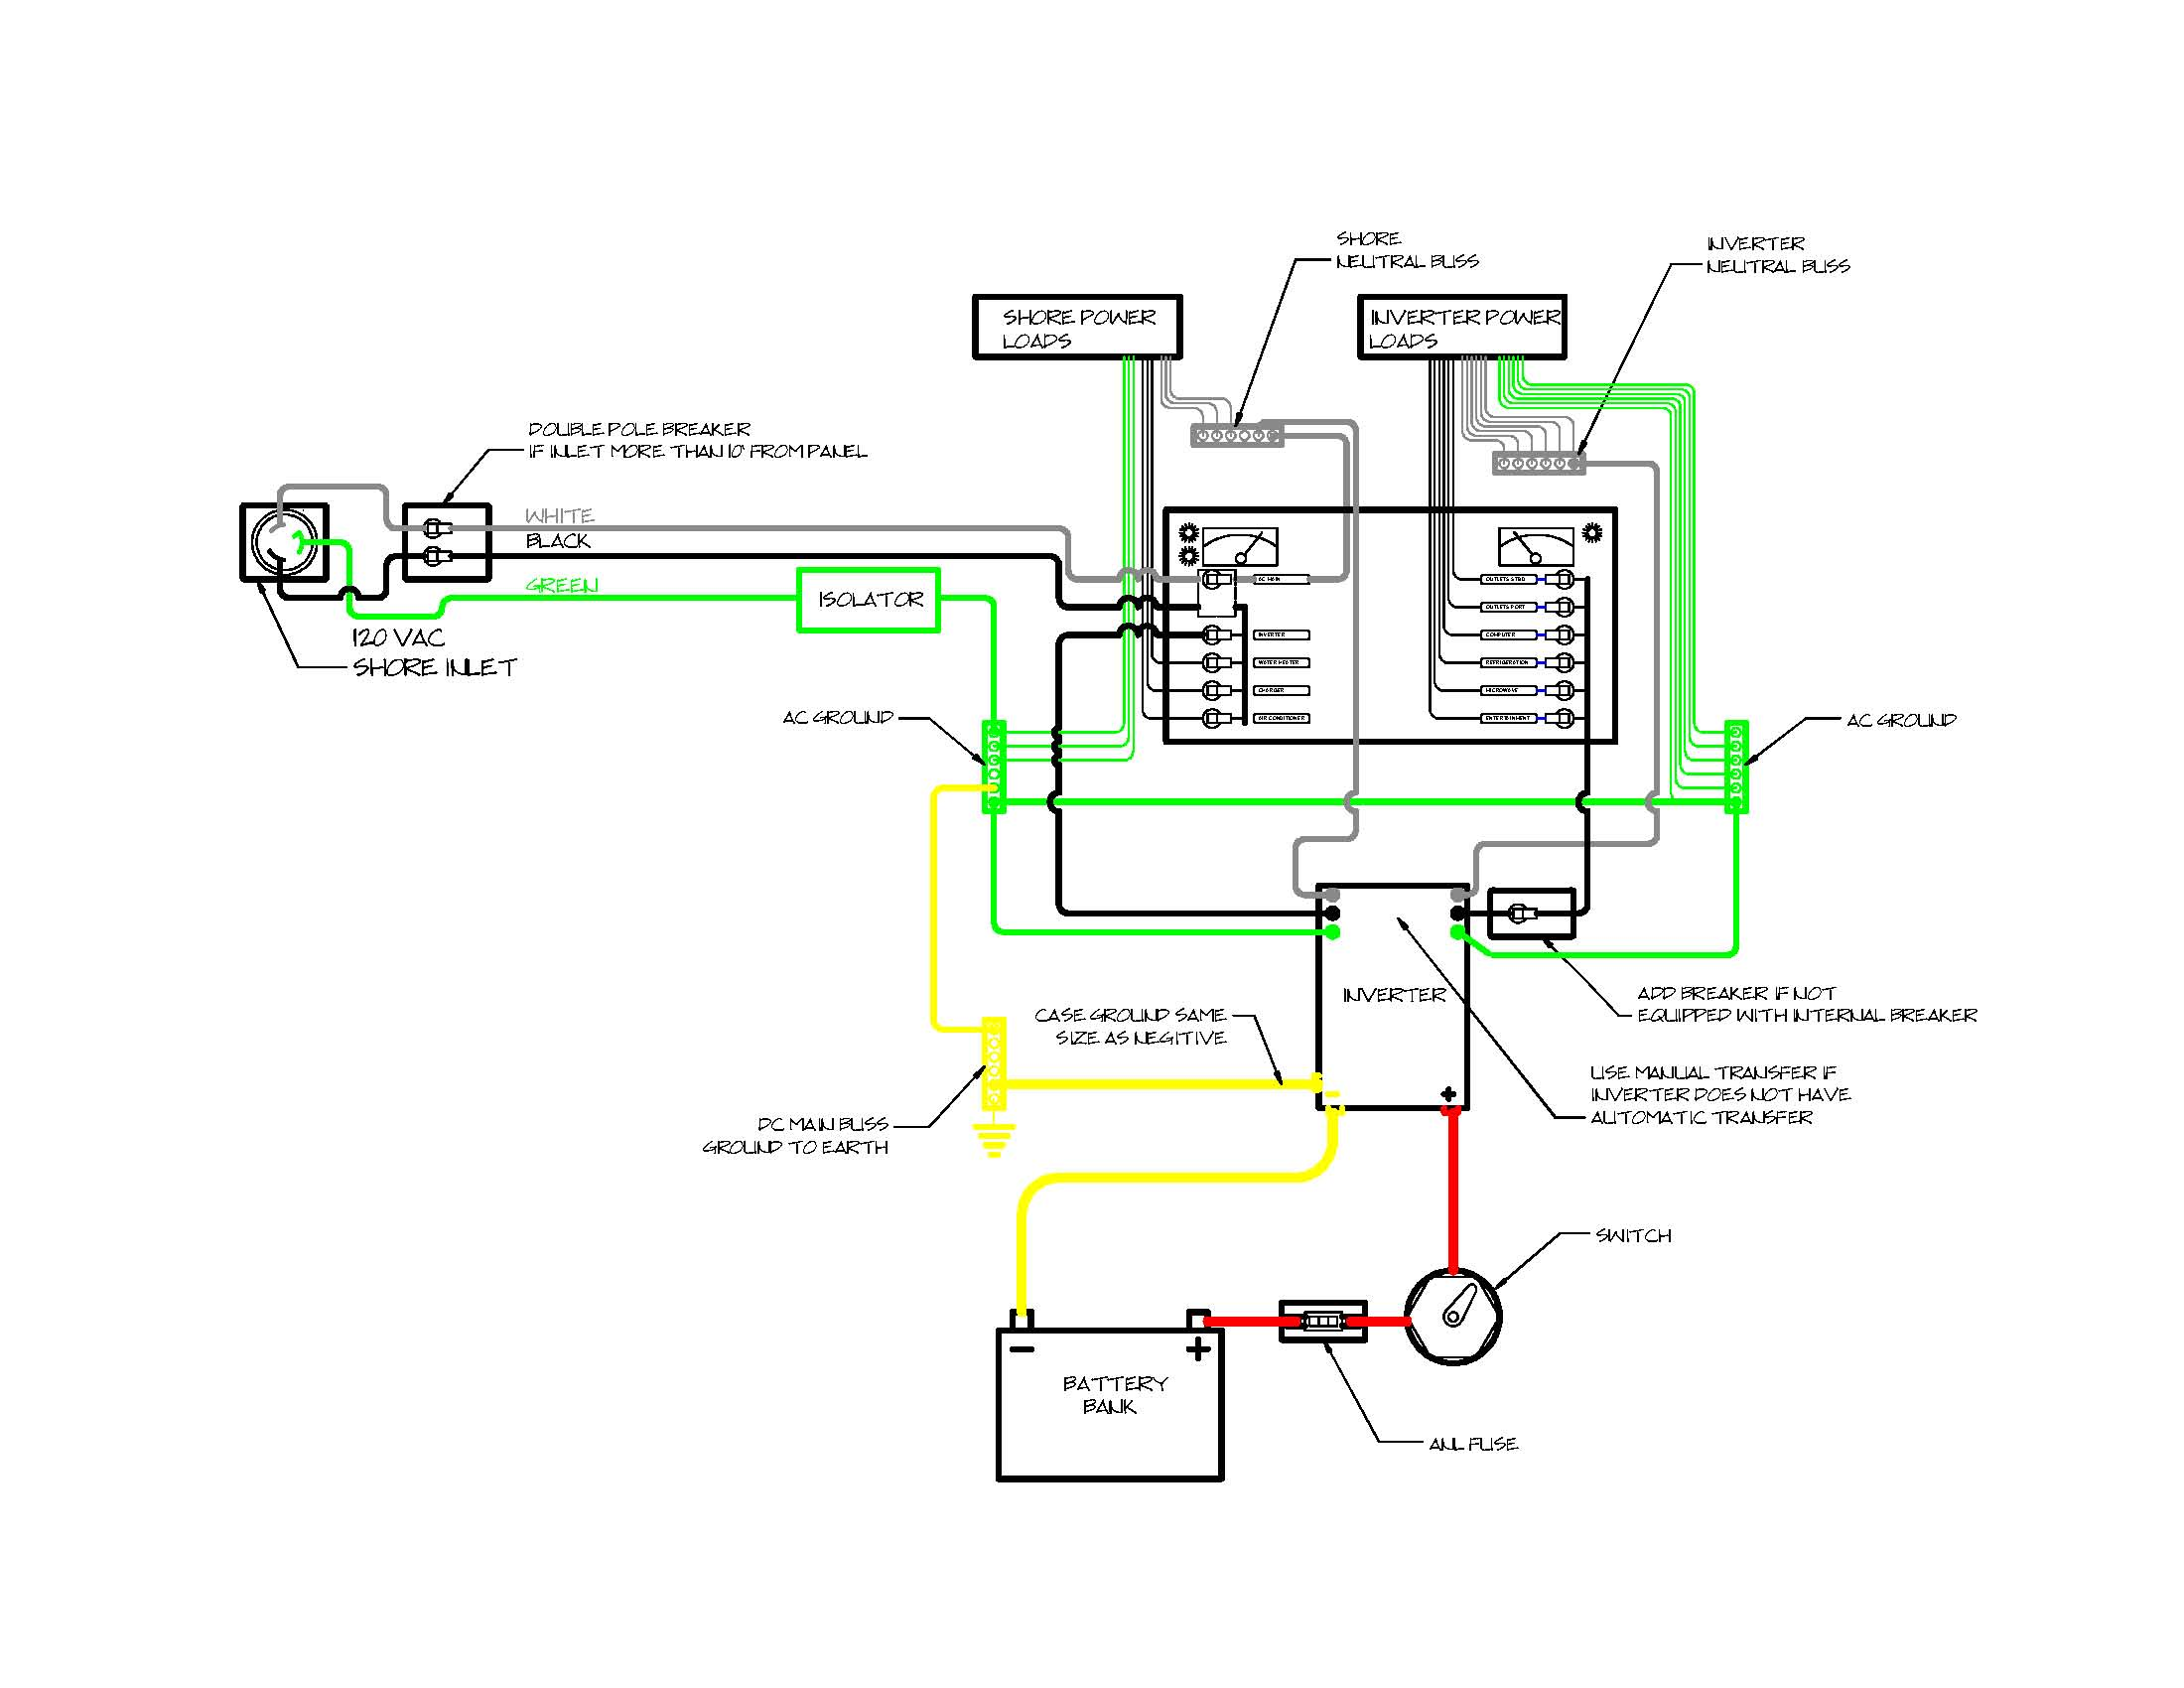 Inverter wiring simplejpg boat inverter wiring diagram how to wire a inverter charger home inverter wiring schematic at soozxer.org